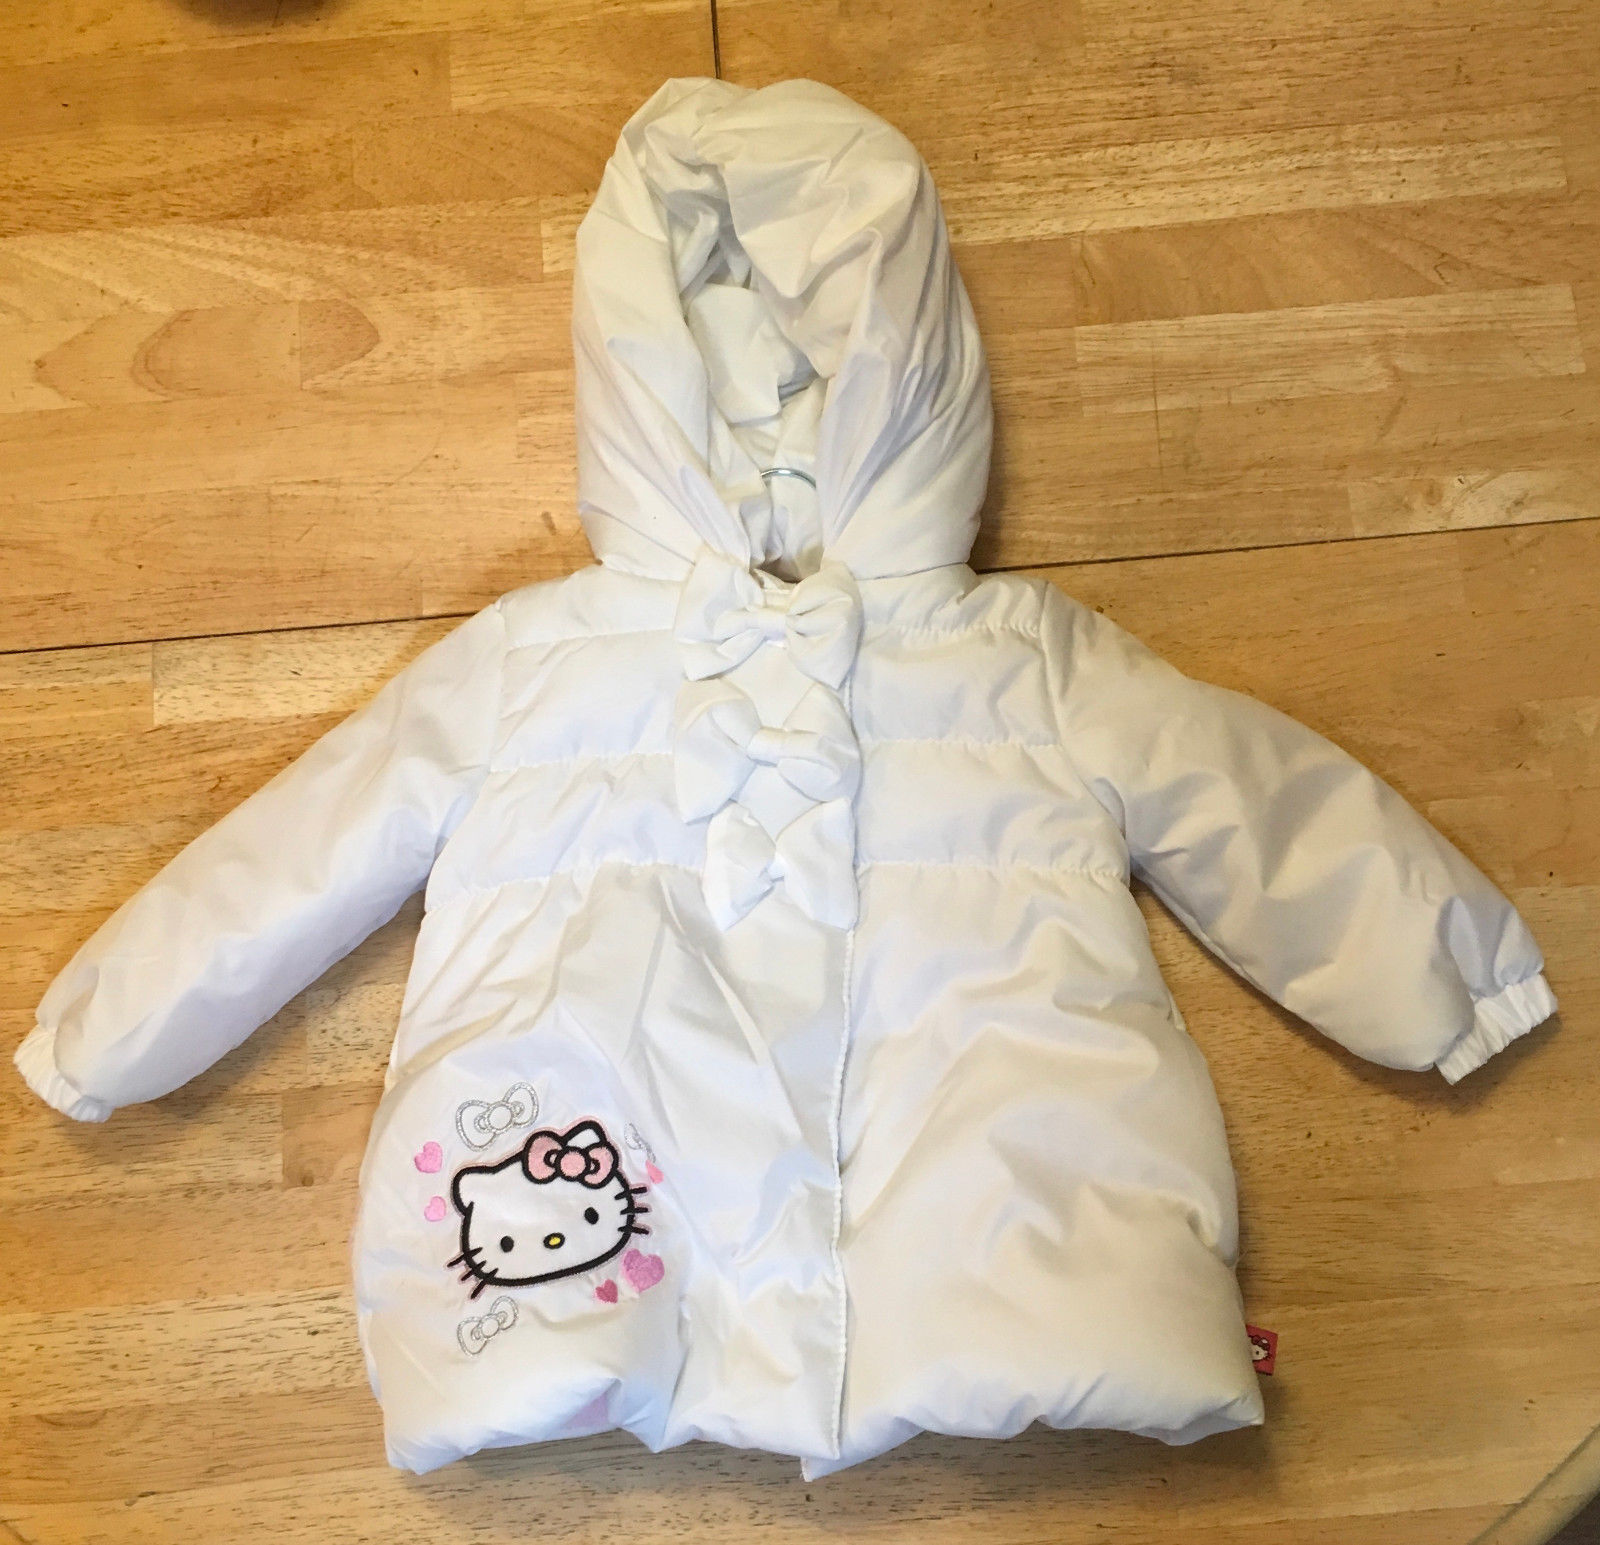 93277c335 Hellokittypufferjacket. Hellokittypufferjacket. Previous. HELLO KITTY  BABY'S PUFFER JACKET size 18 mos